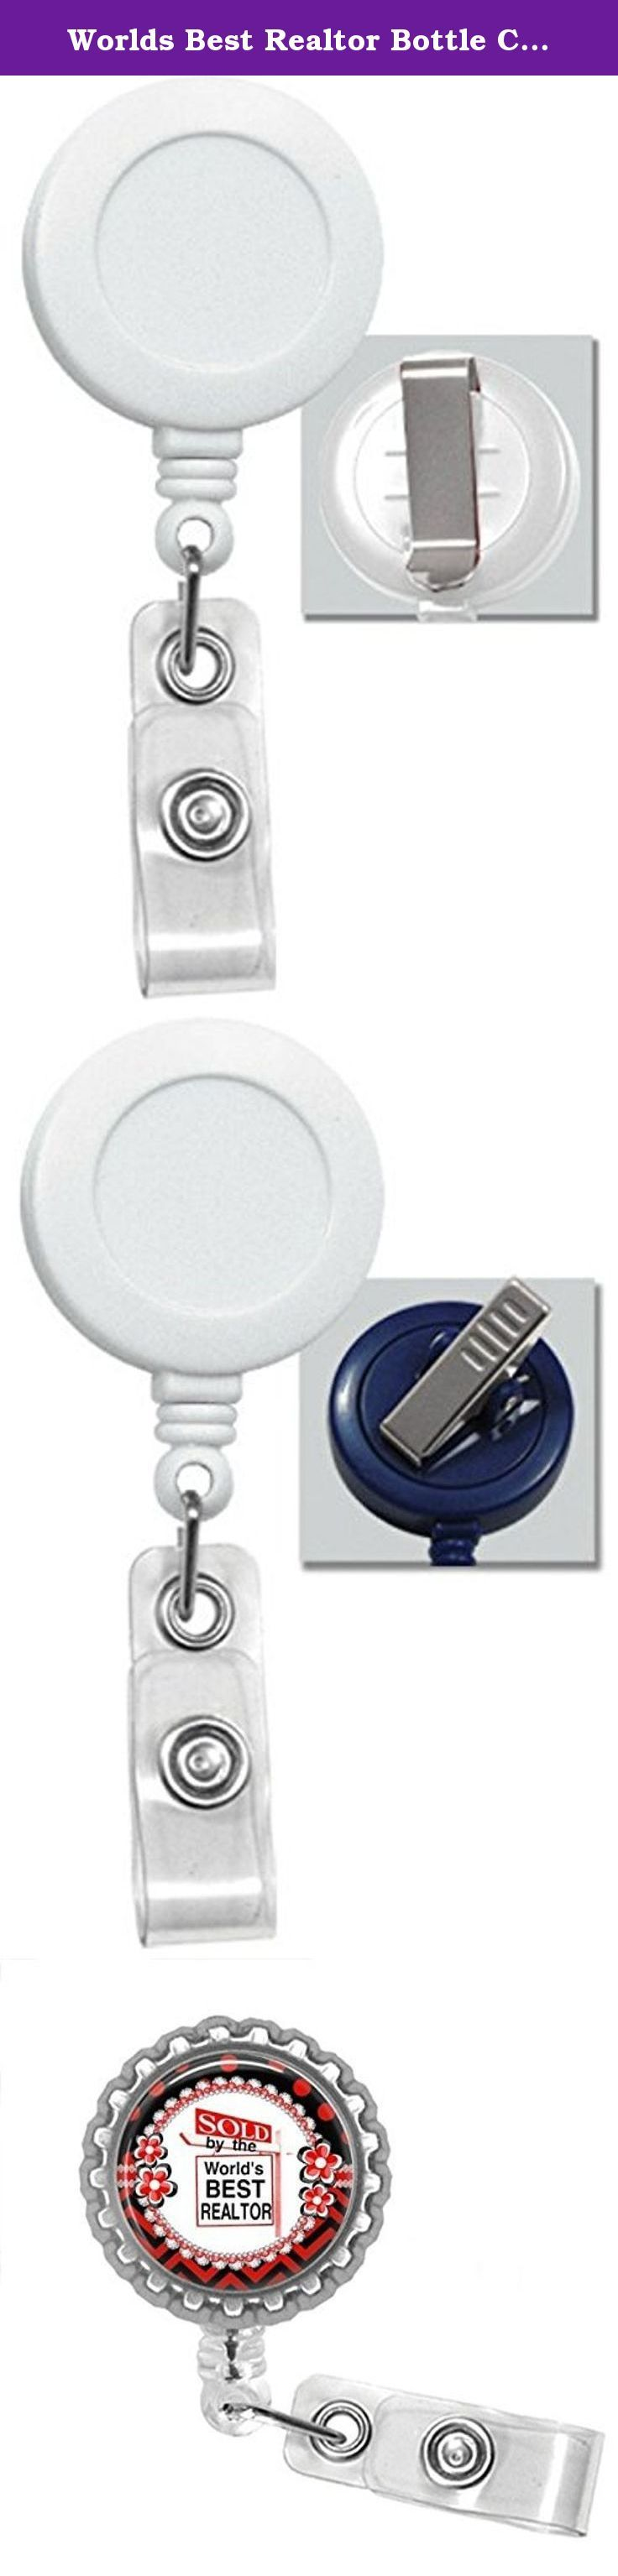 Worlds Best Realtor Bottle Cap Retractable Badge ID Holder. Worlds best realtor bottlecap badge reel is a great item to hang your work or school Id's from. Badge is 1.25 in diameter. The badge also is a Retractable badge with your choice of either a clip or a swivel alligator clip Pictures 2 is a slide clip picture 3 is an alligator clip The retractable cord is 24 inches Badge reel says Sold By World's Best Realtor on it. The color of the badge reel is white.